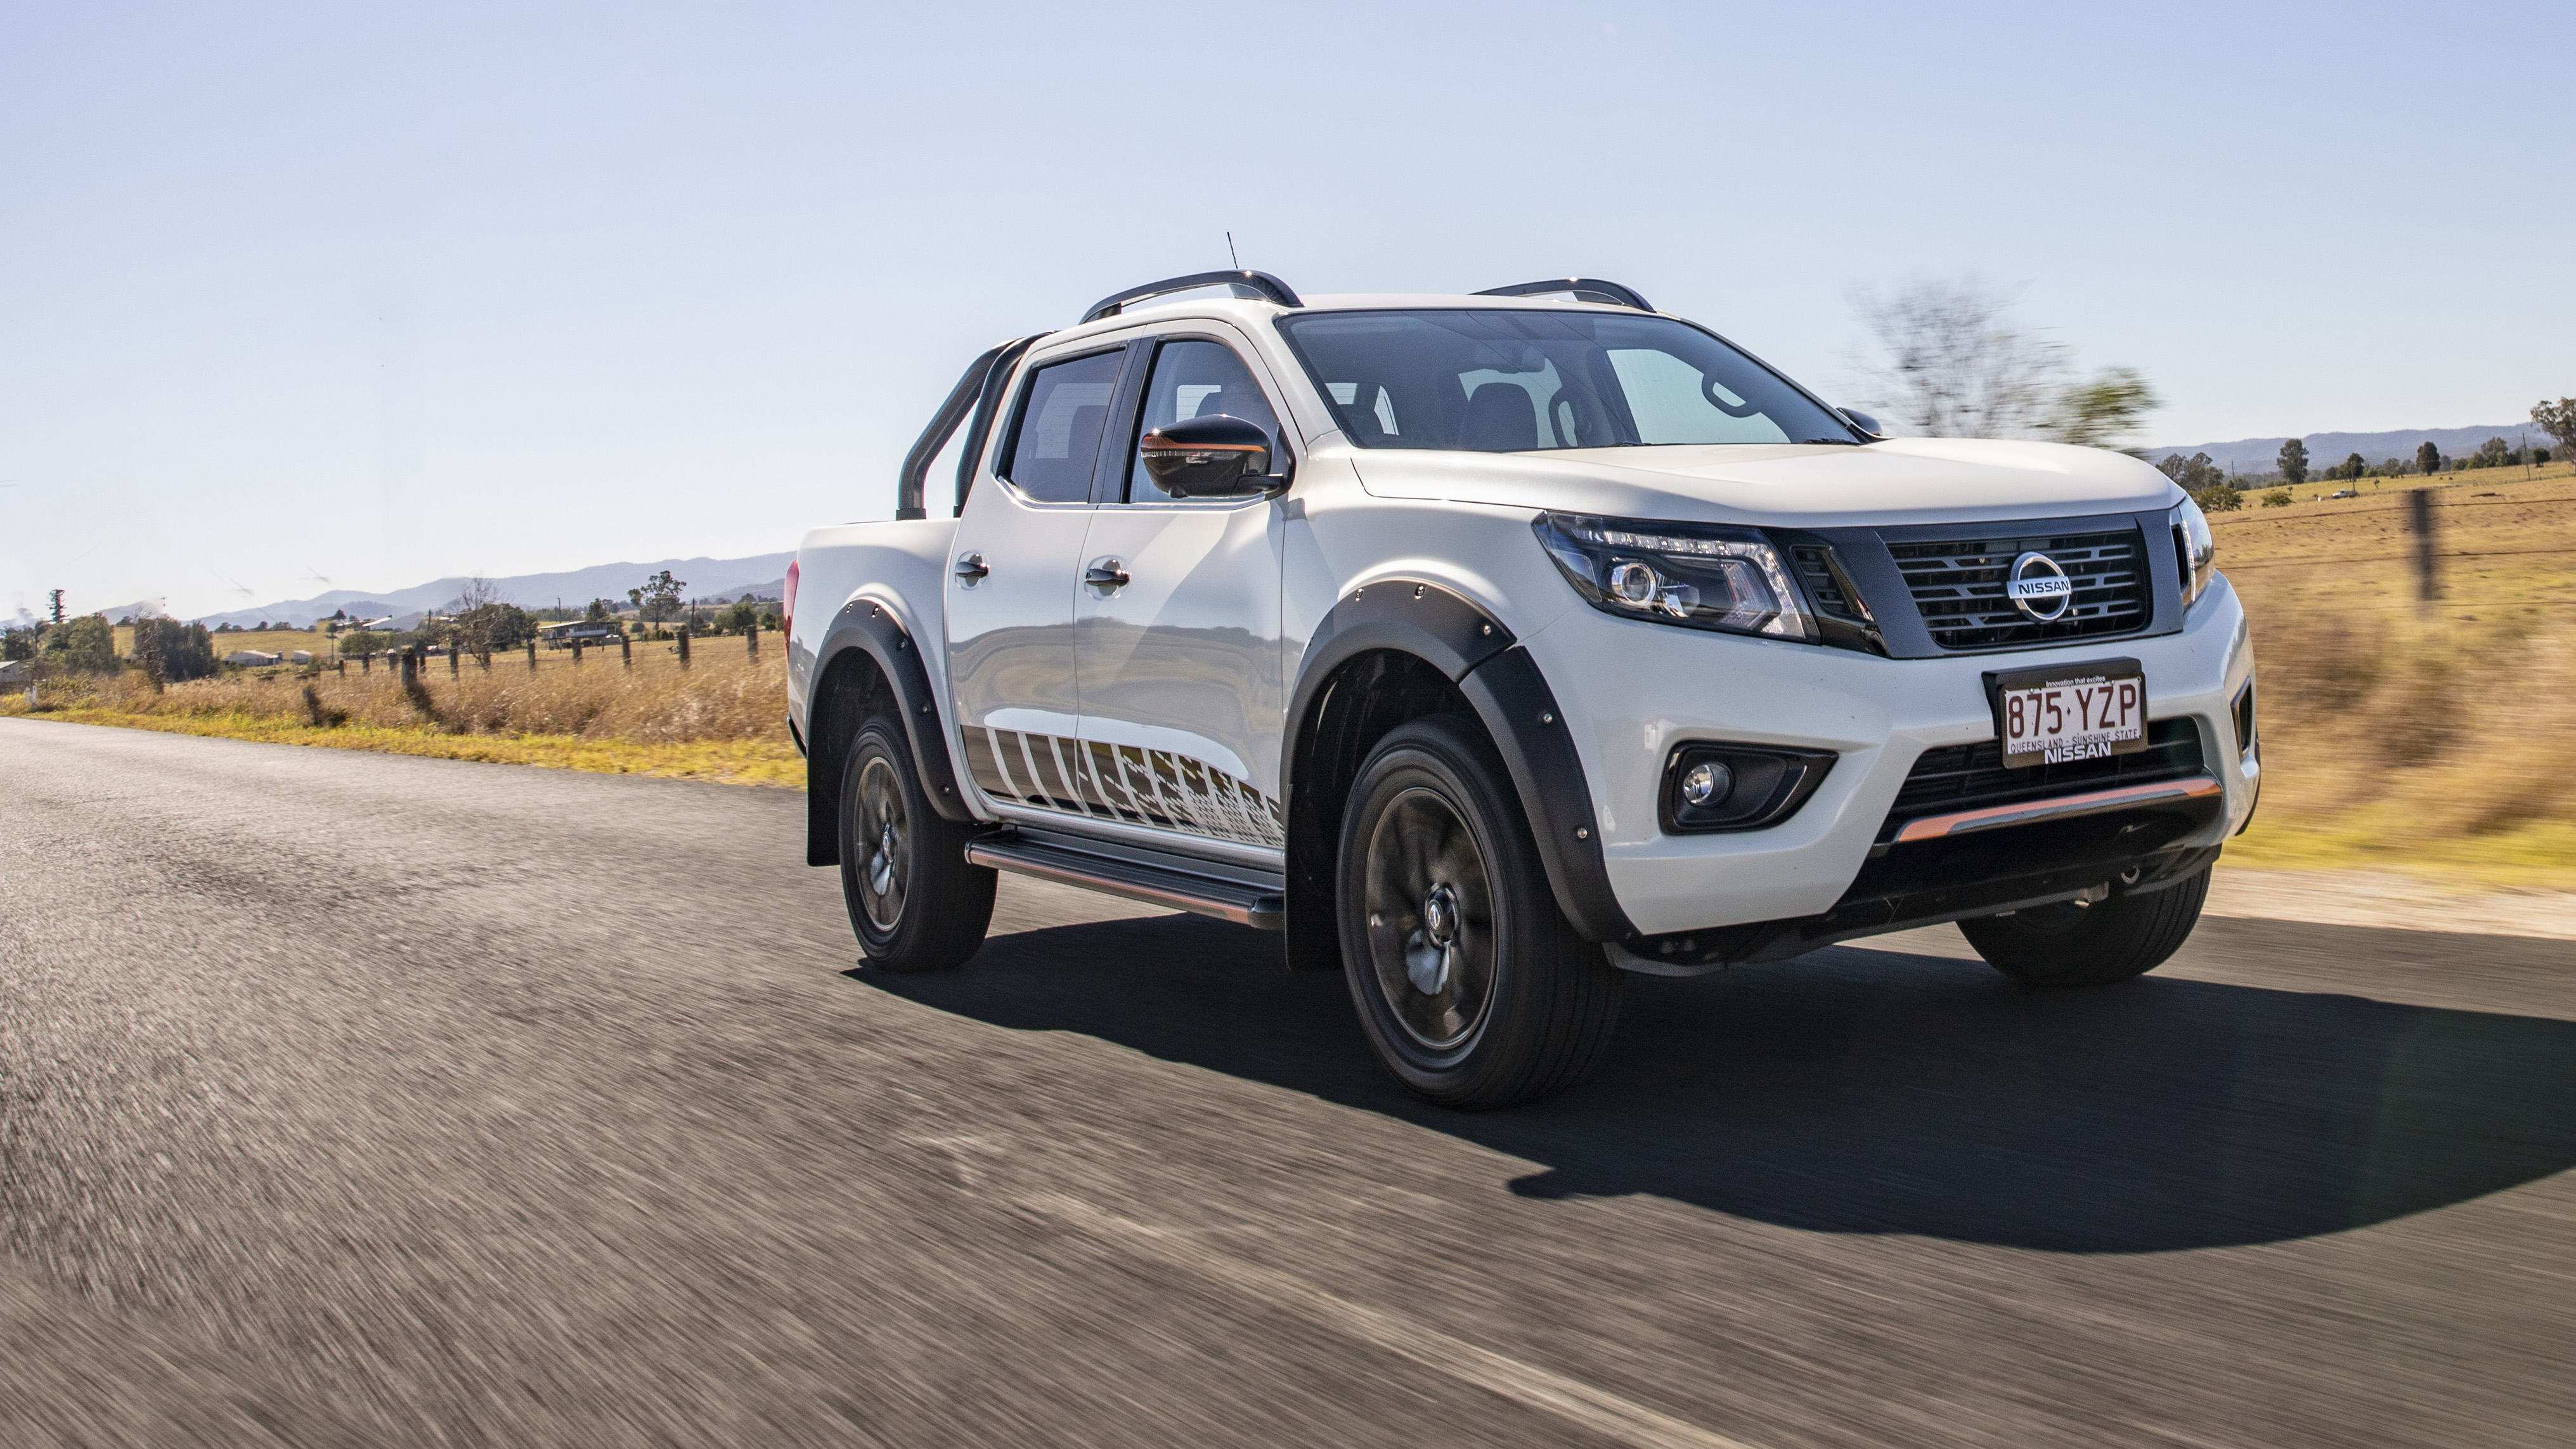 32 The 2019 Nissan Navara Price